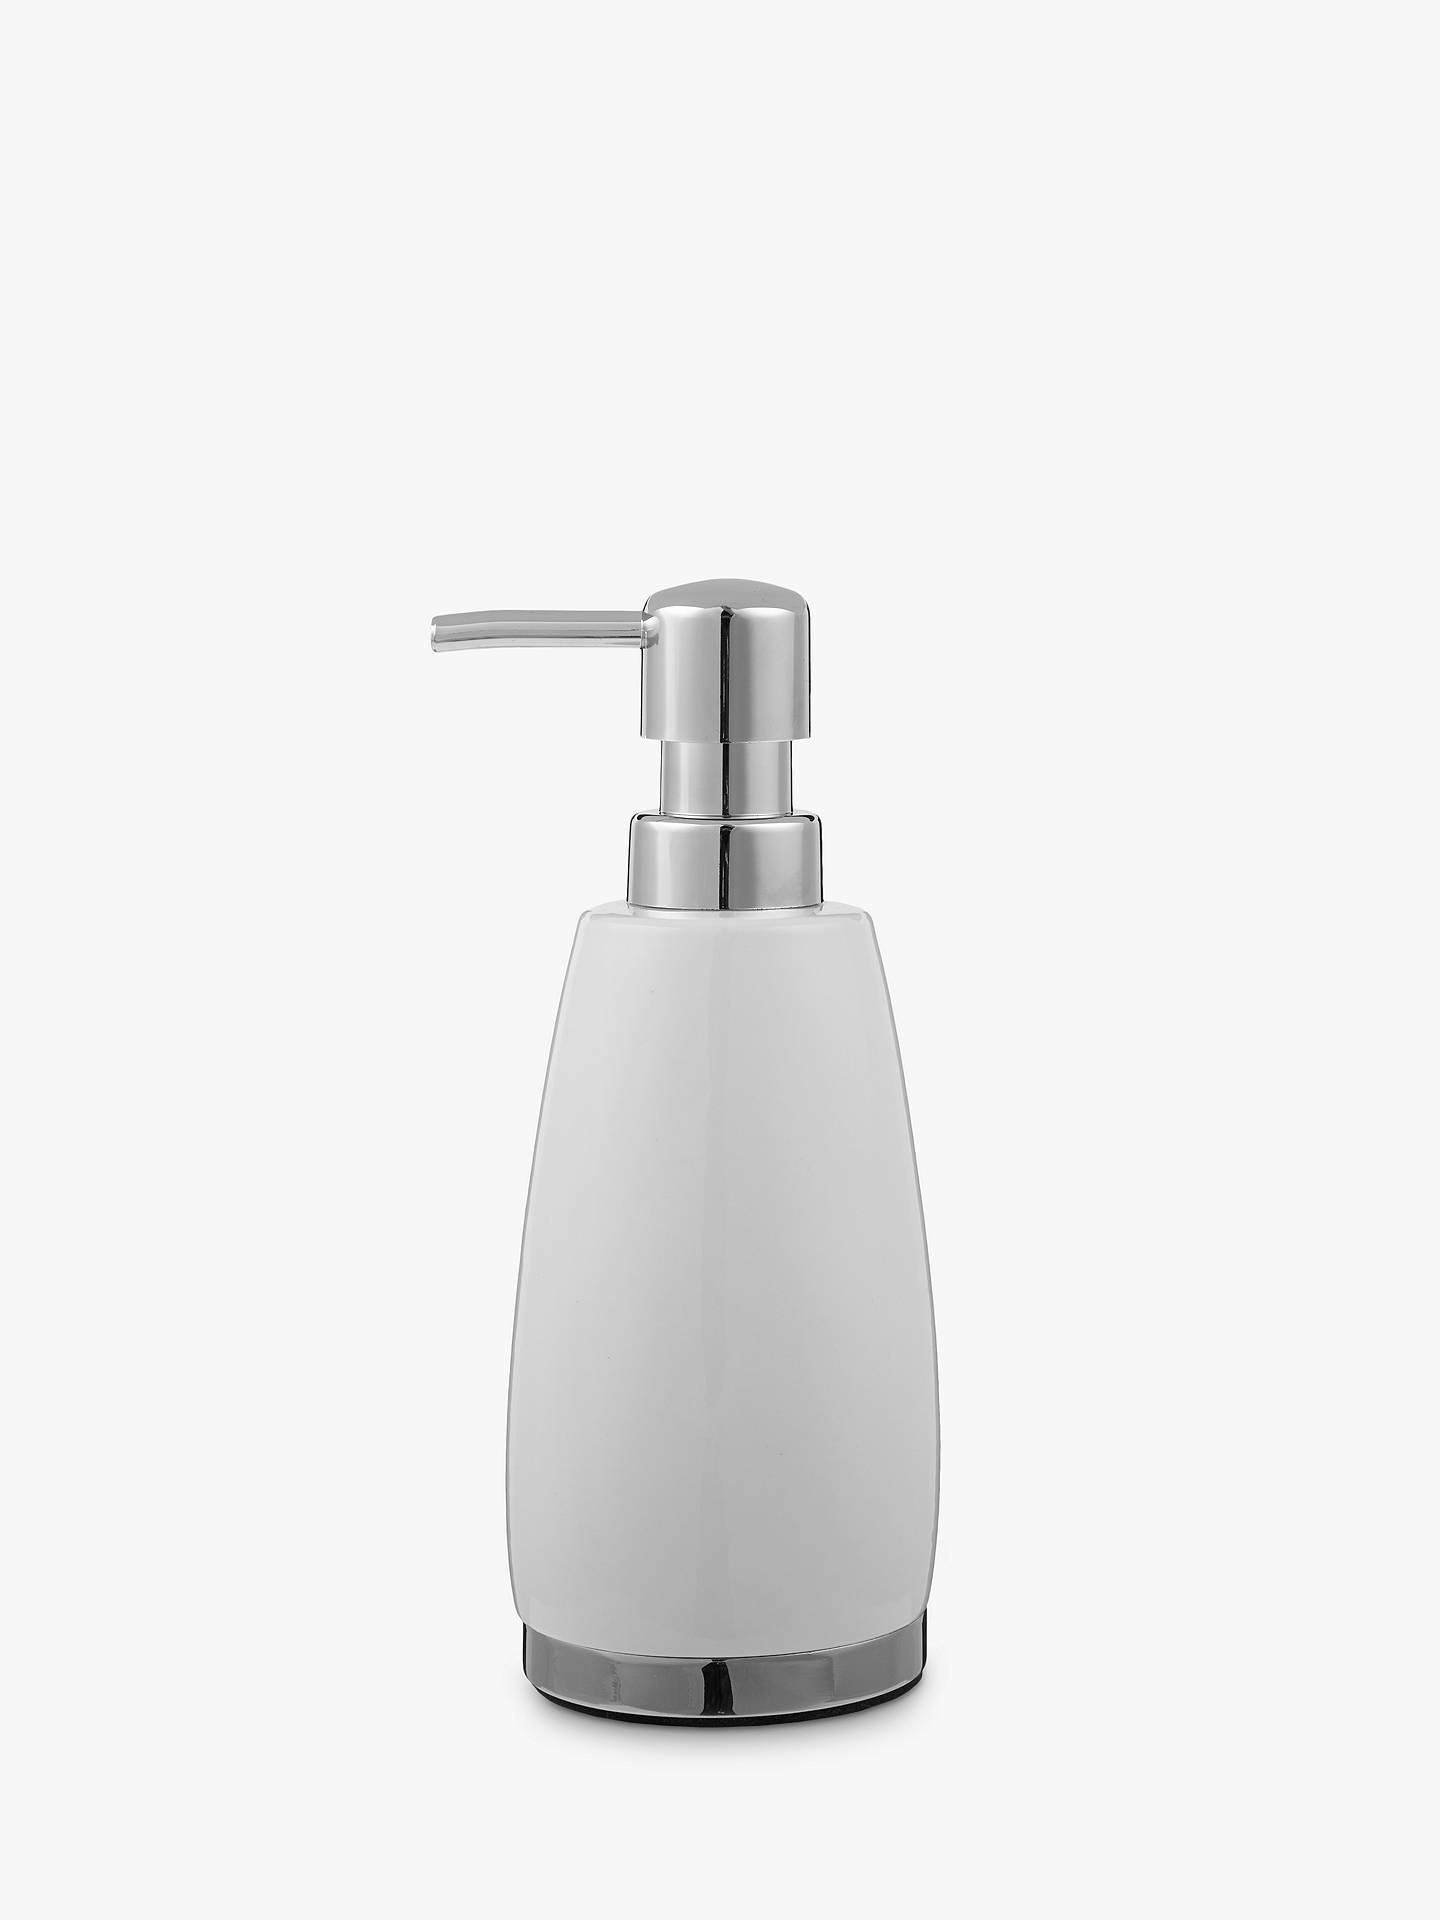 Buy John Lewis & Partners London Ceramic Soap Dispenser, White Online at johnlewis.com